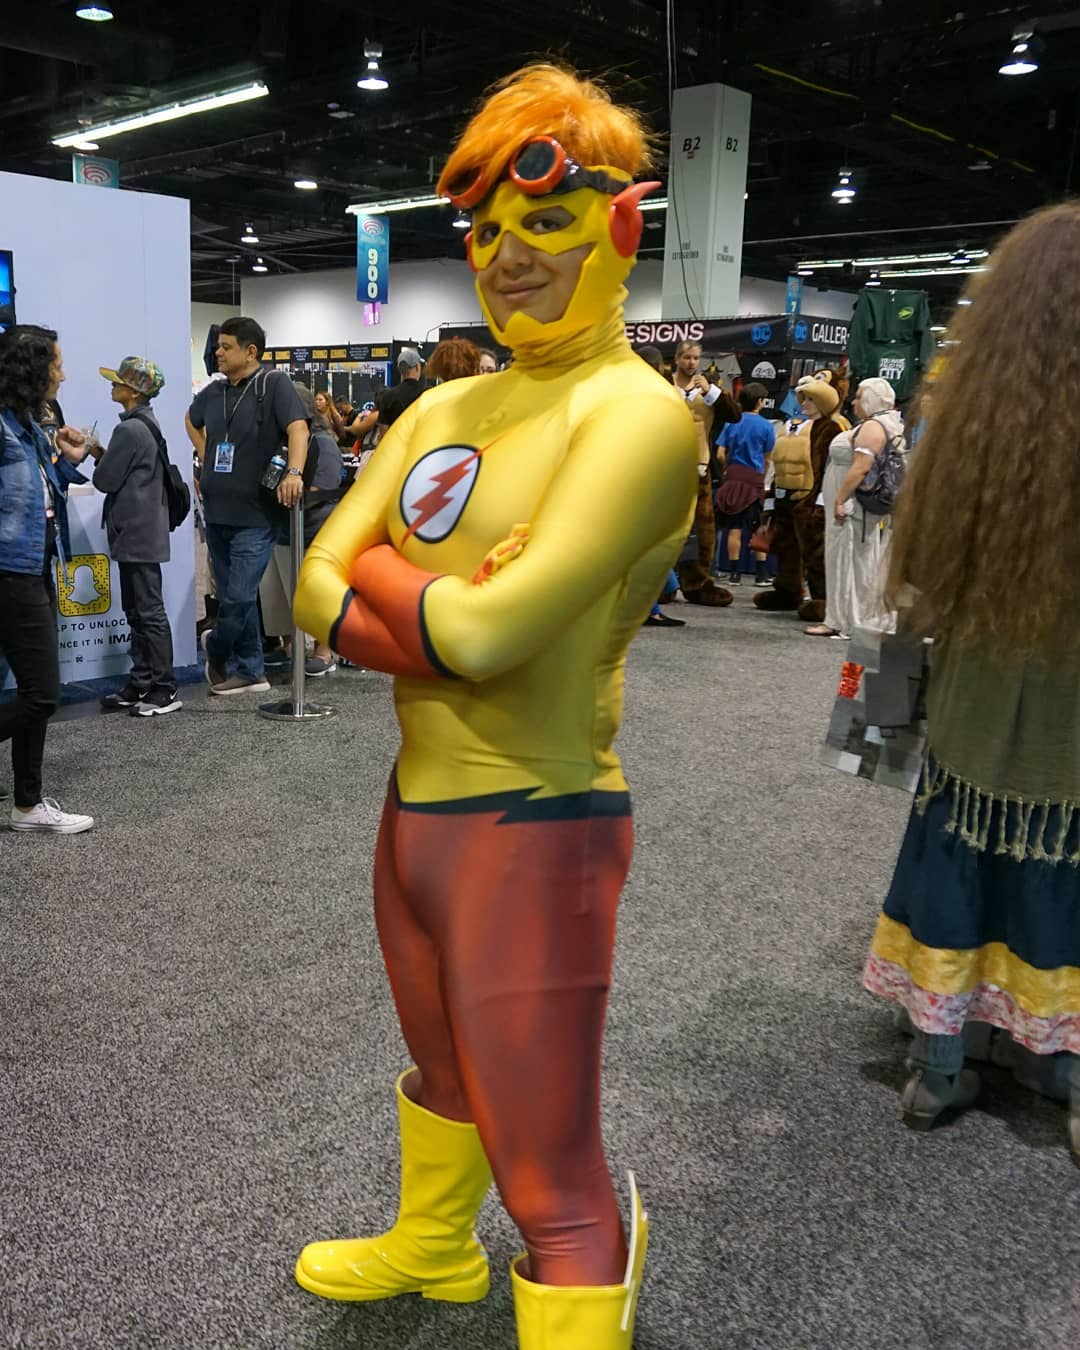 spotted today at @wondercon